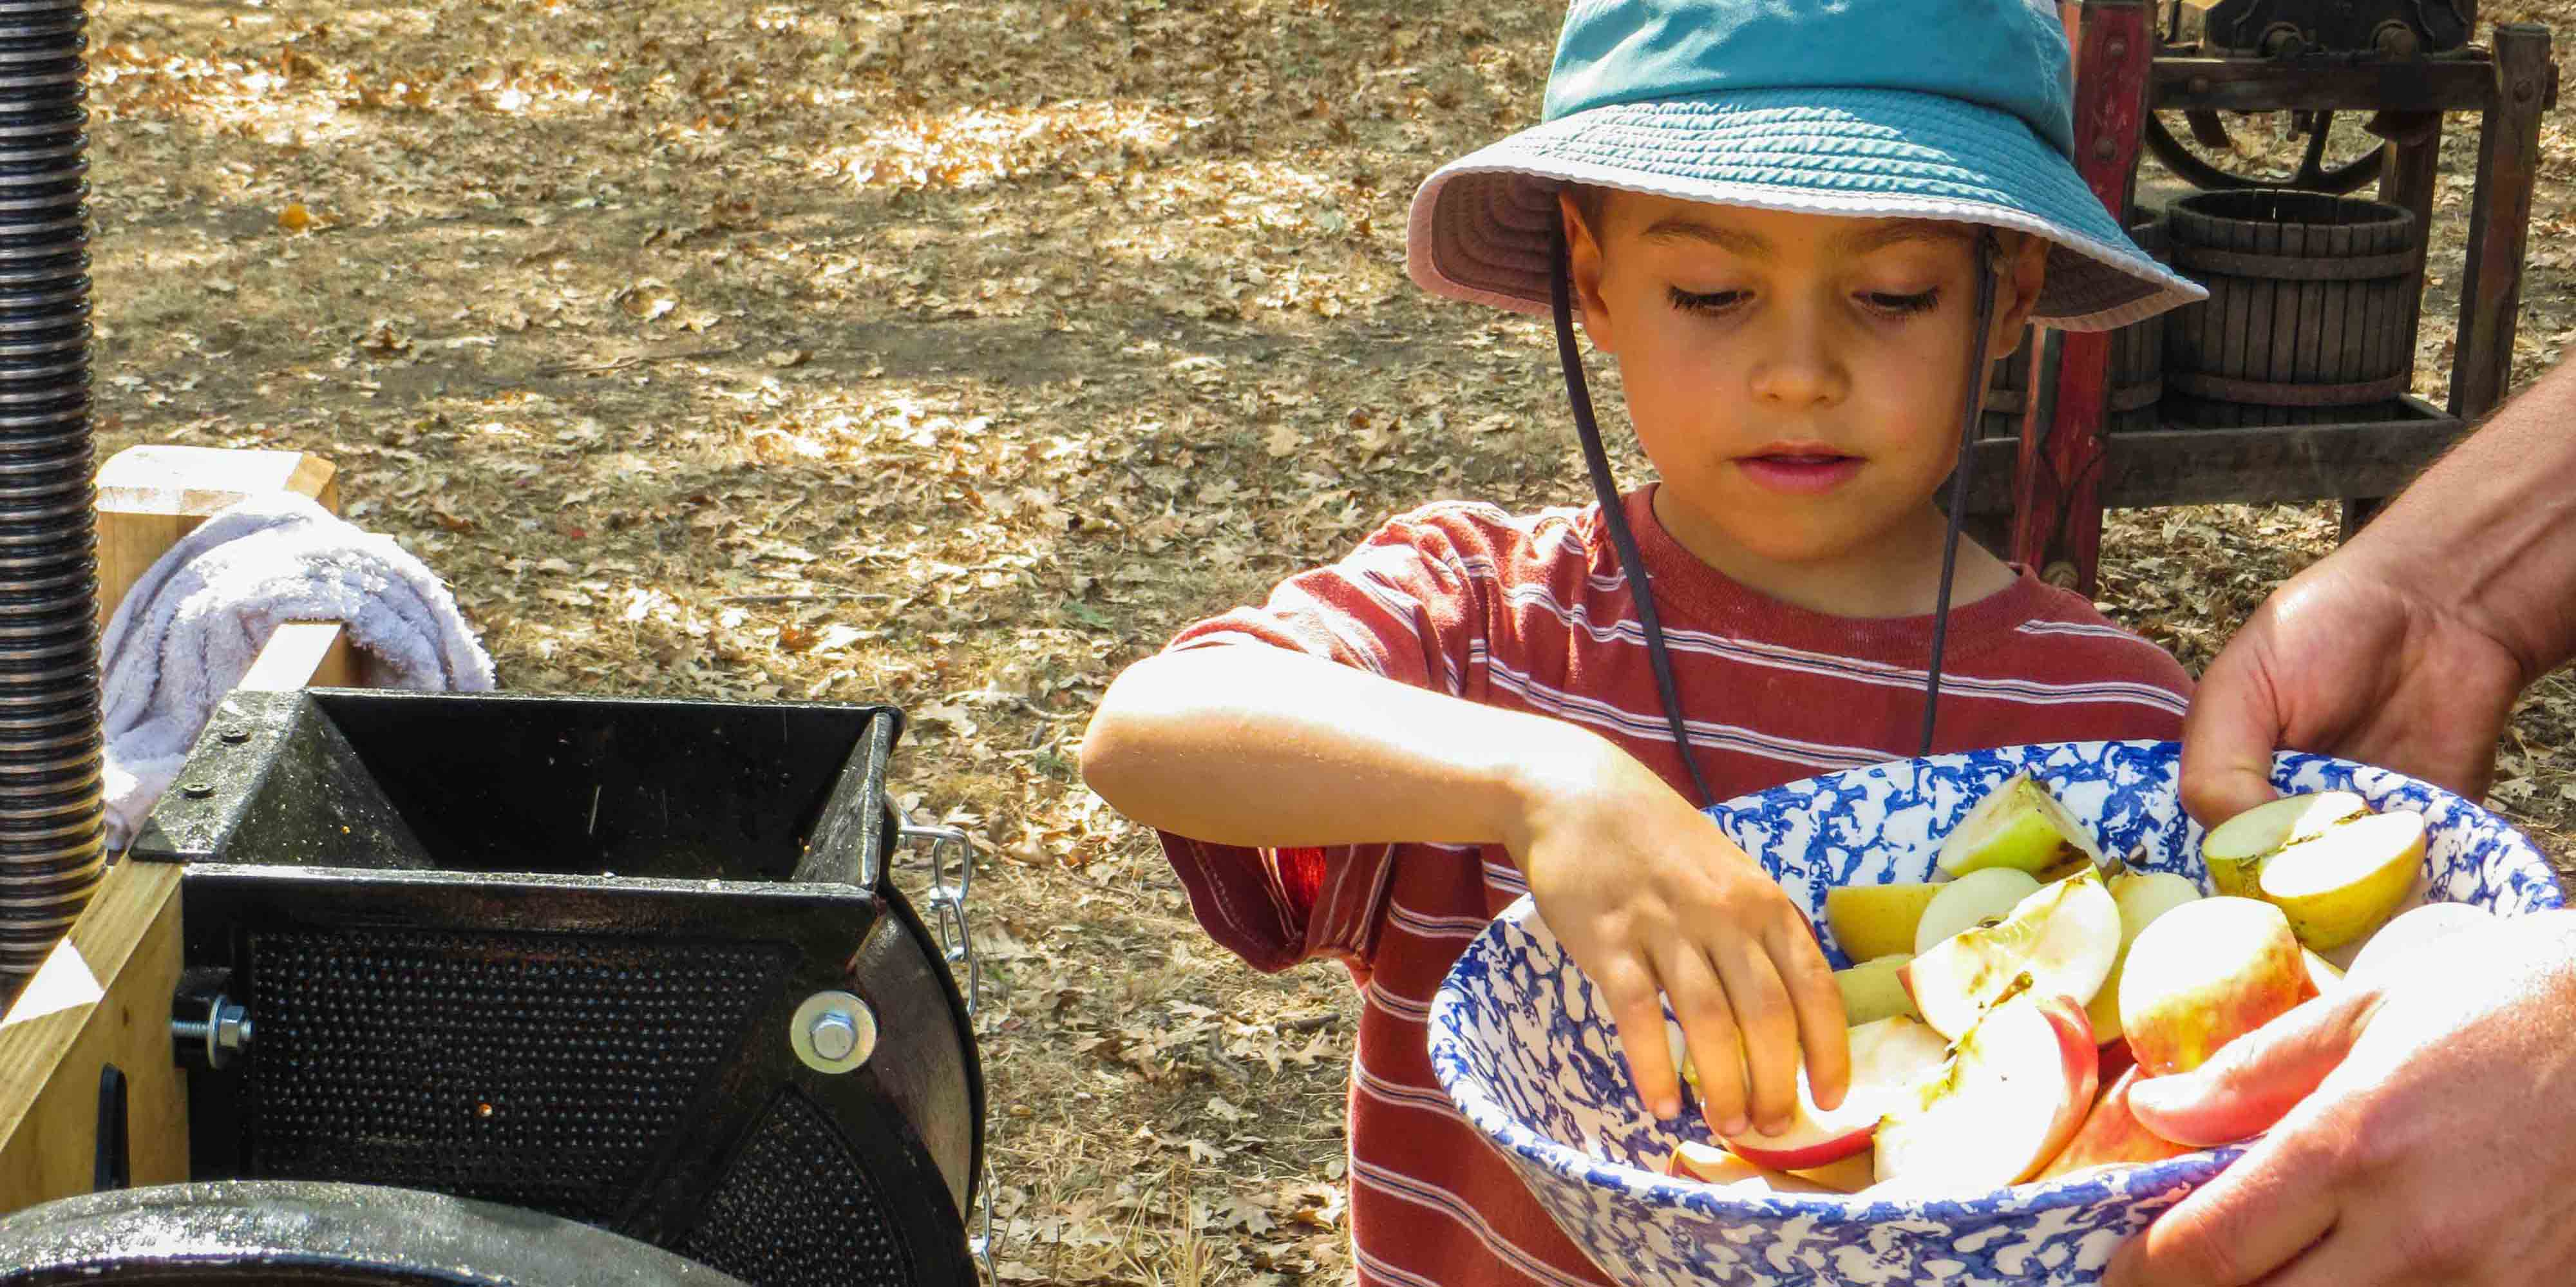 Apple pressing with the Sonoma Land Trust